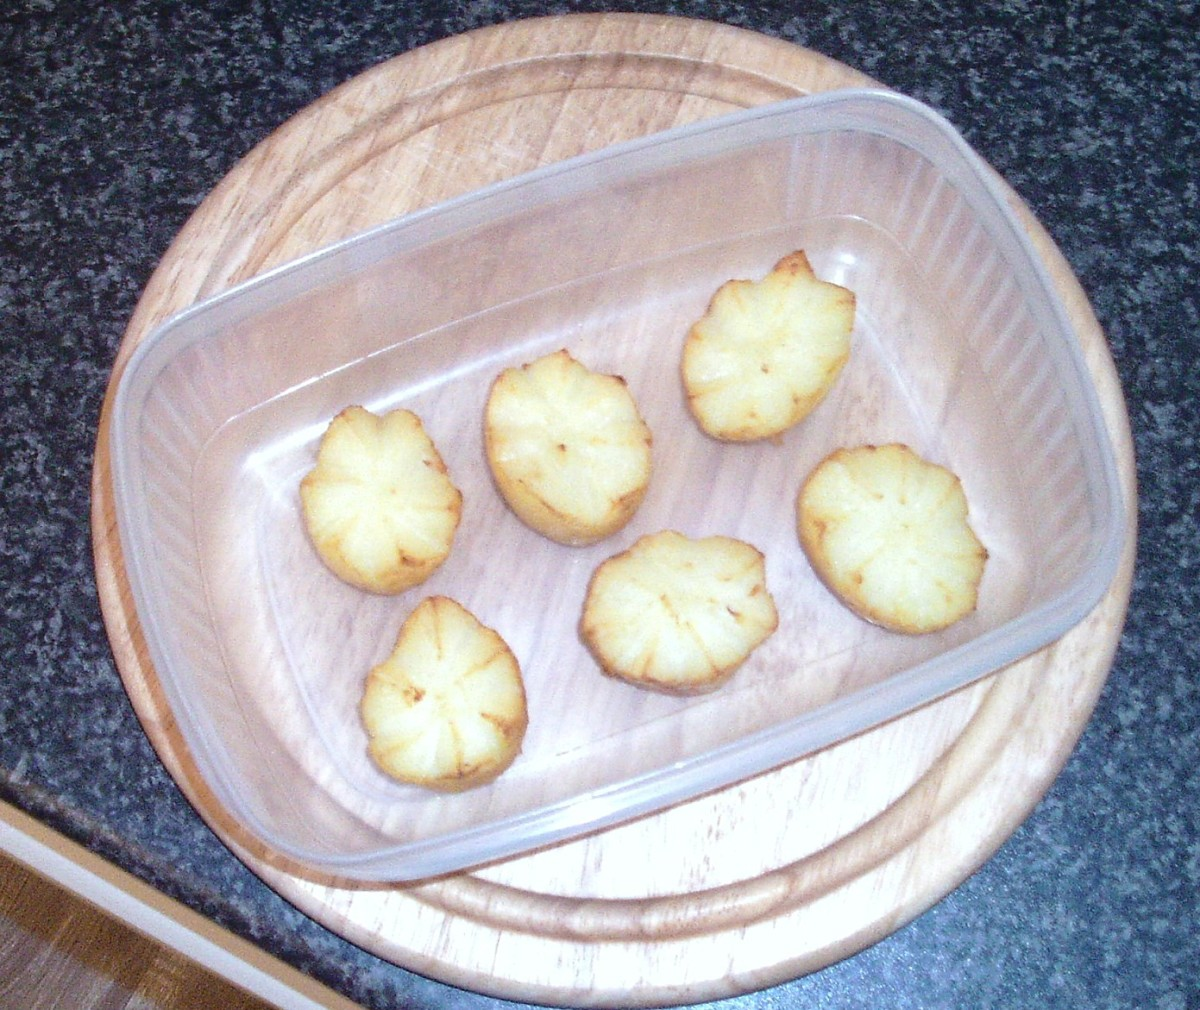 Once fried potato crowns are returned to the fridge